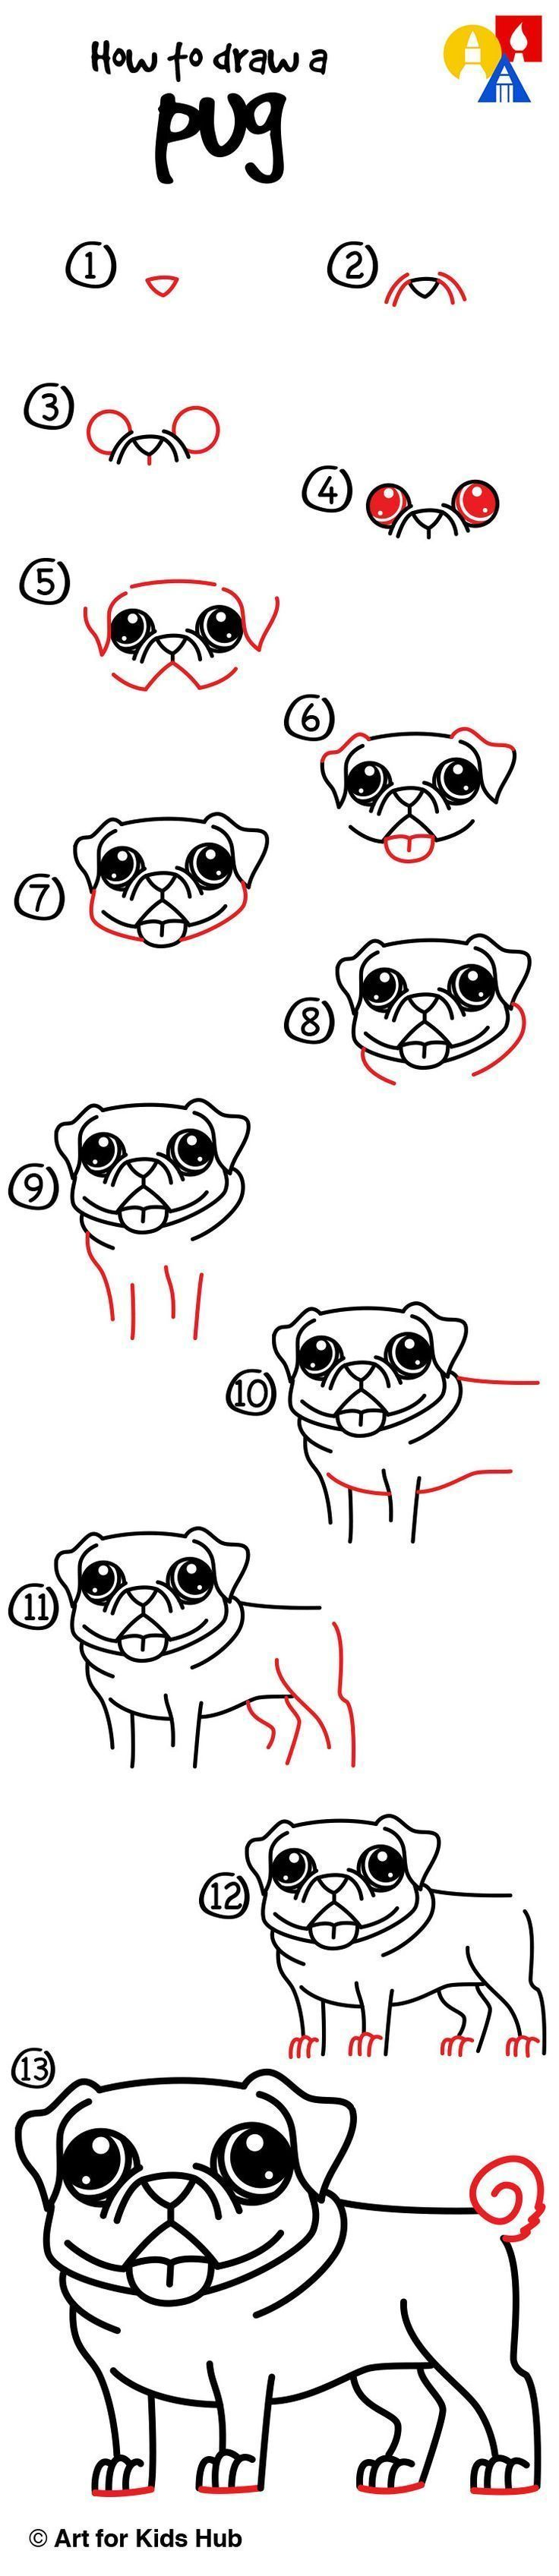 How To Draw A Pug  Art For Kids Hub